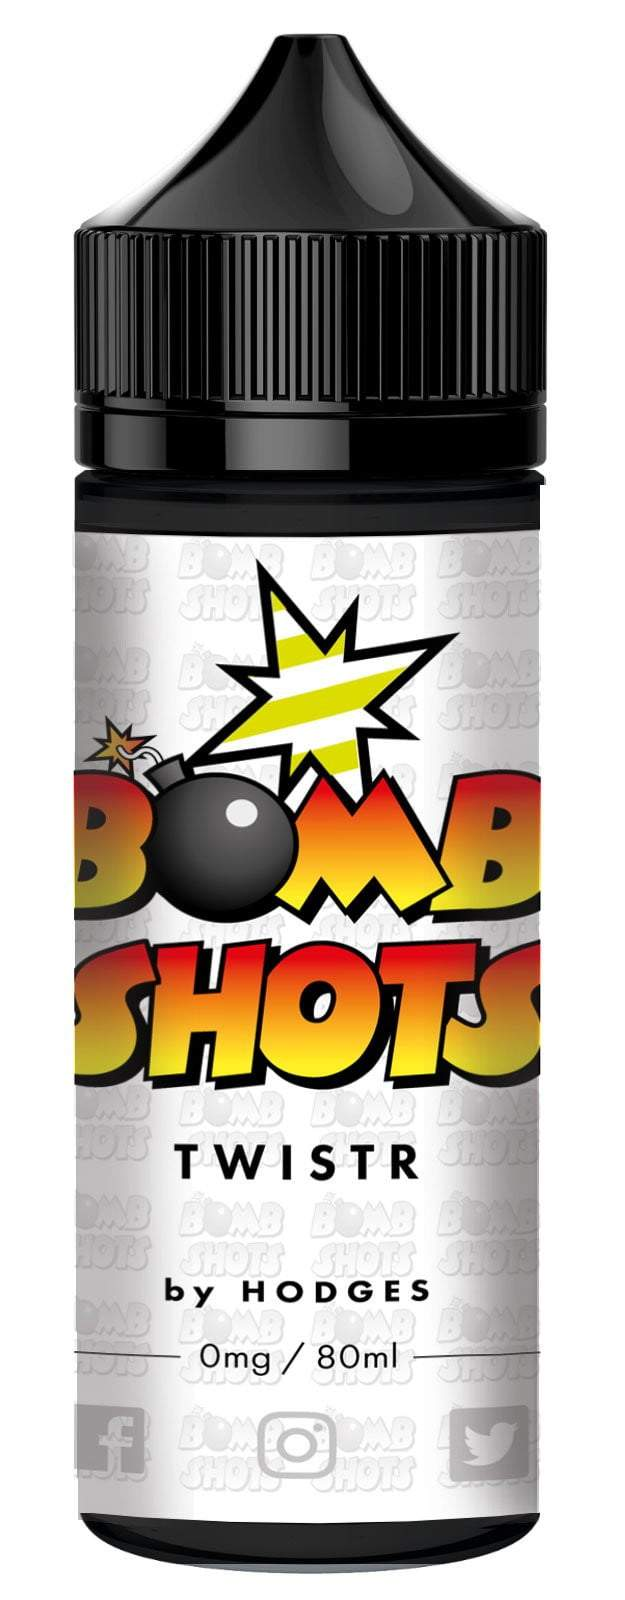 TWISTR Bomb Shots By Hodges Short Fill E-Liquid (80ml)120ml Hodges e-Juice hodges-home-brew